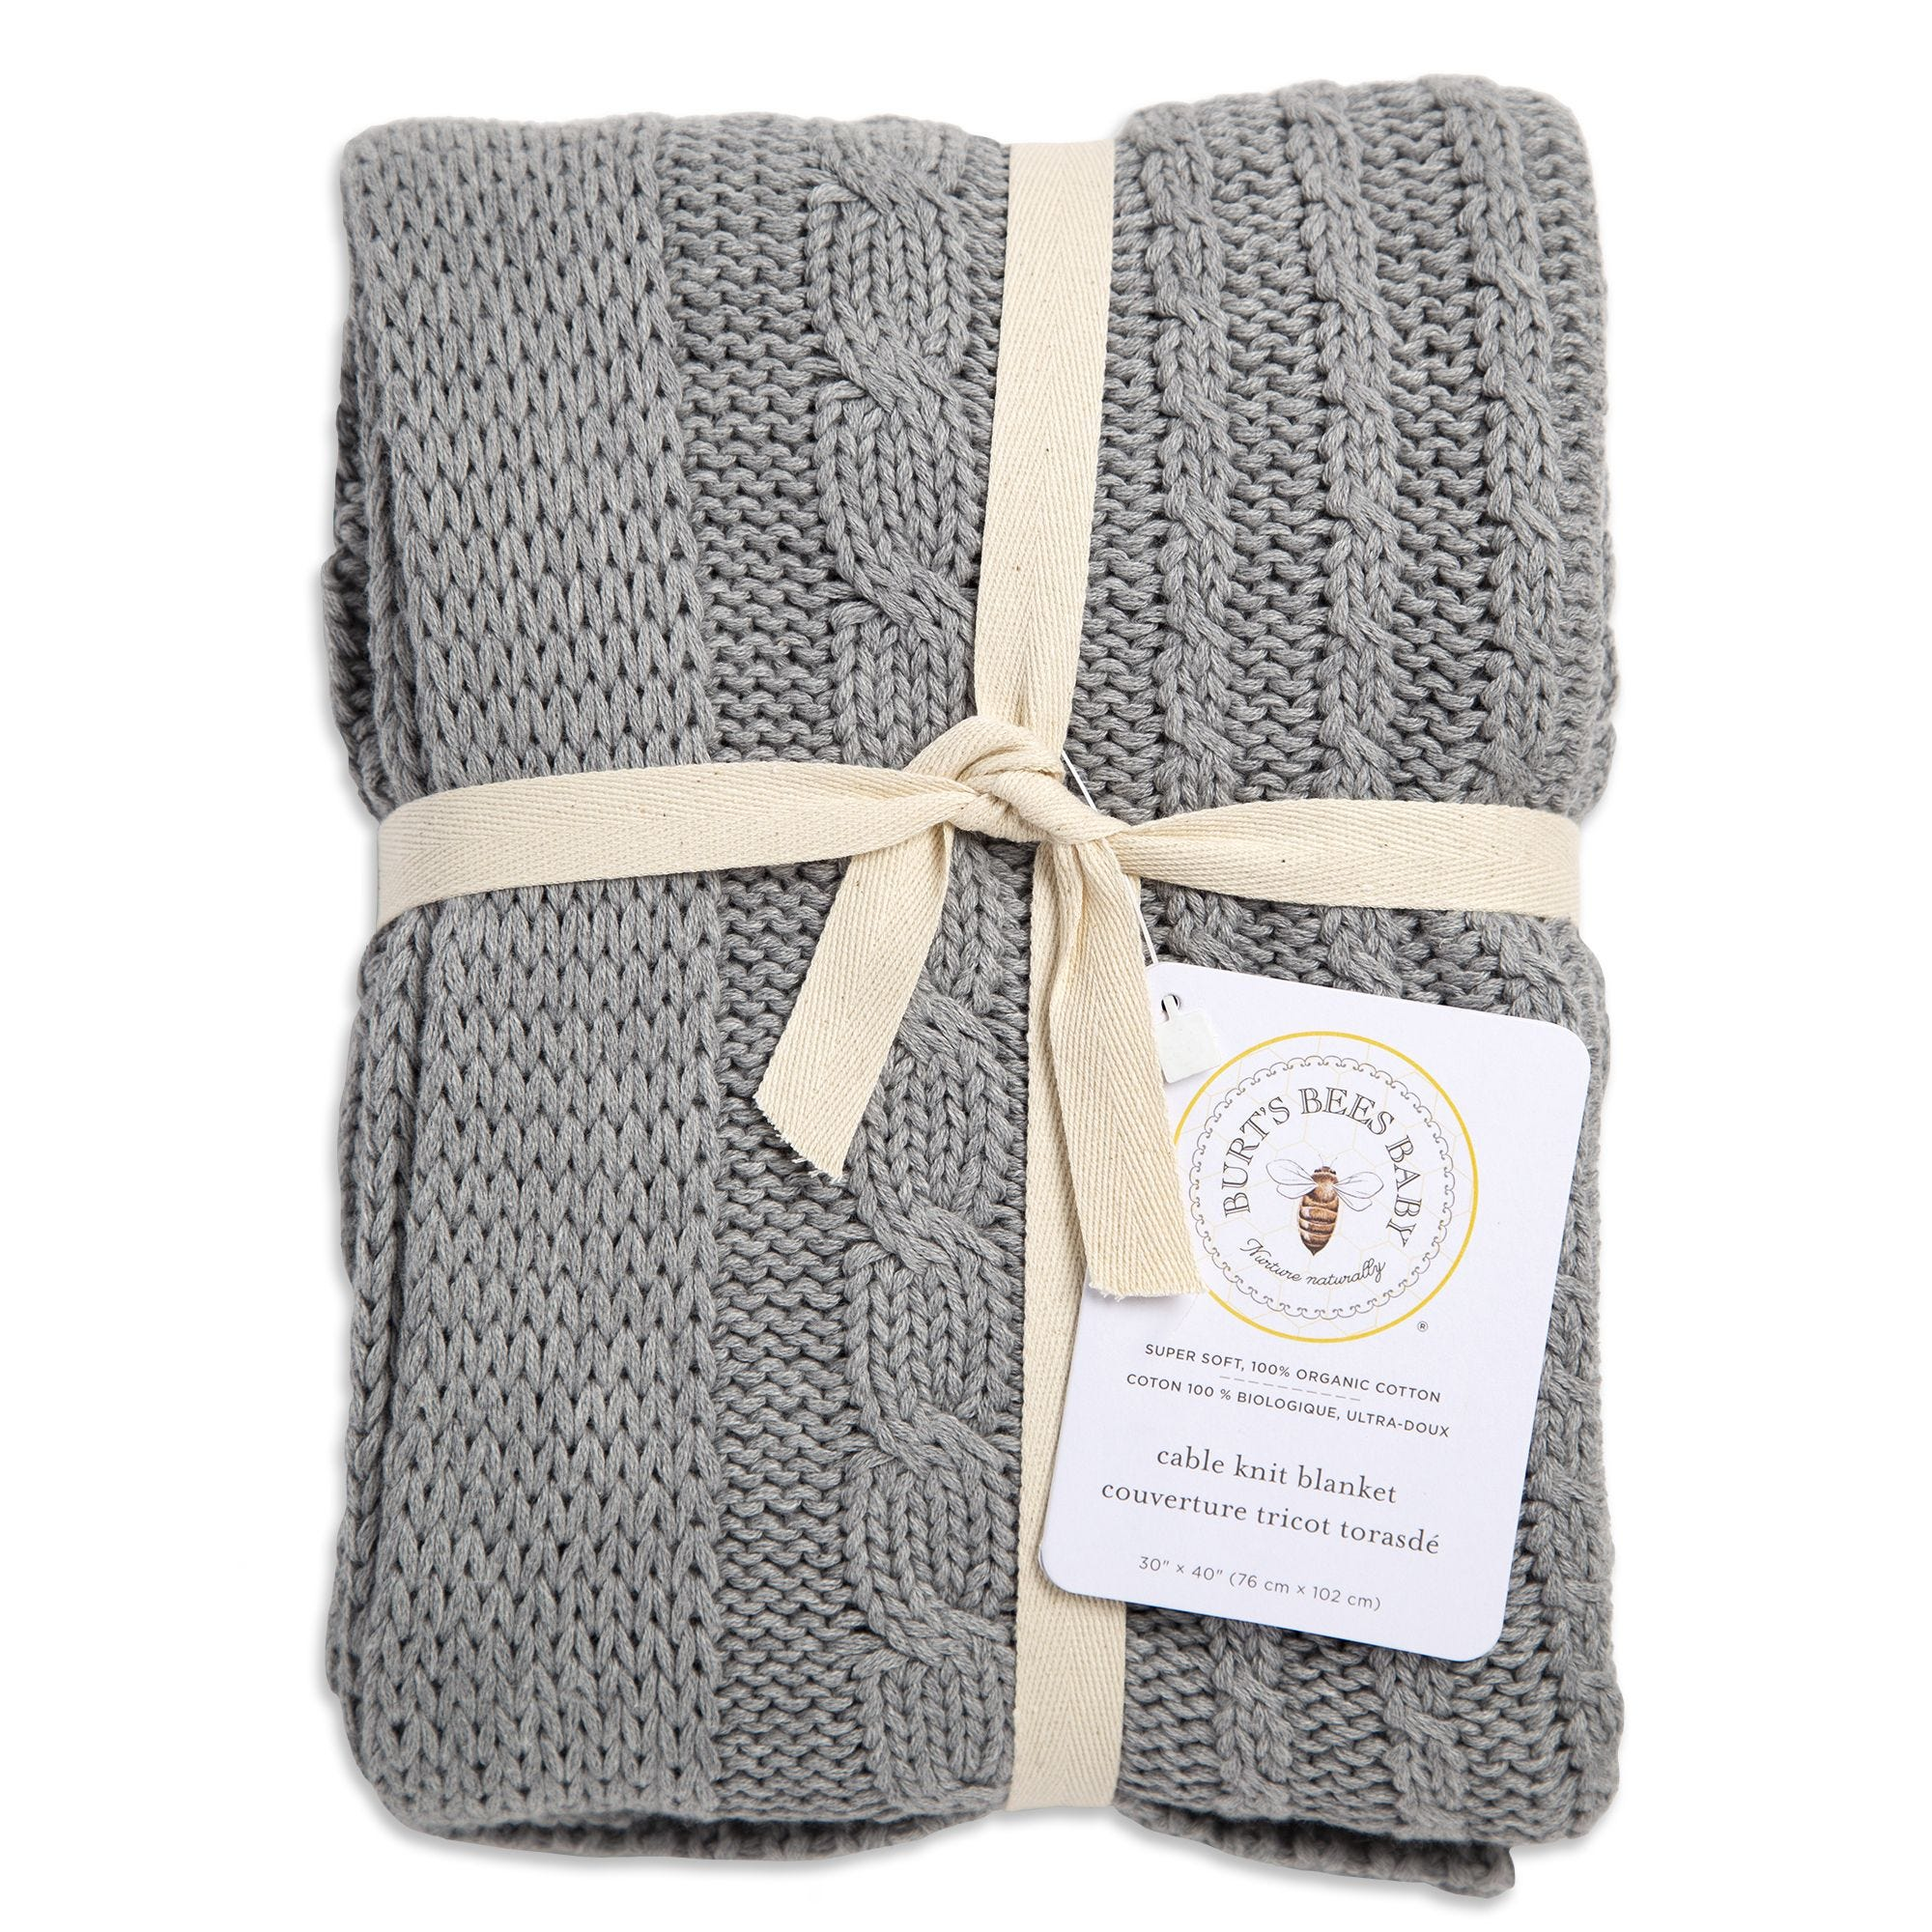 c64106cde78 Organic Cable Knit Organic Baby Sweater Blanket - Grey